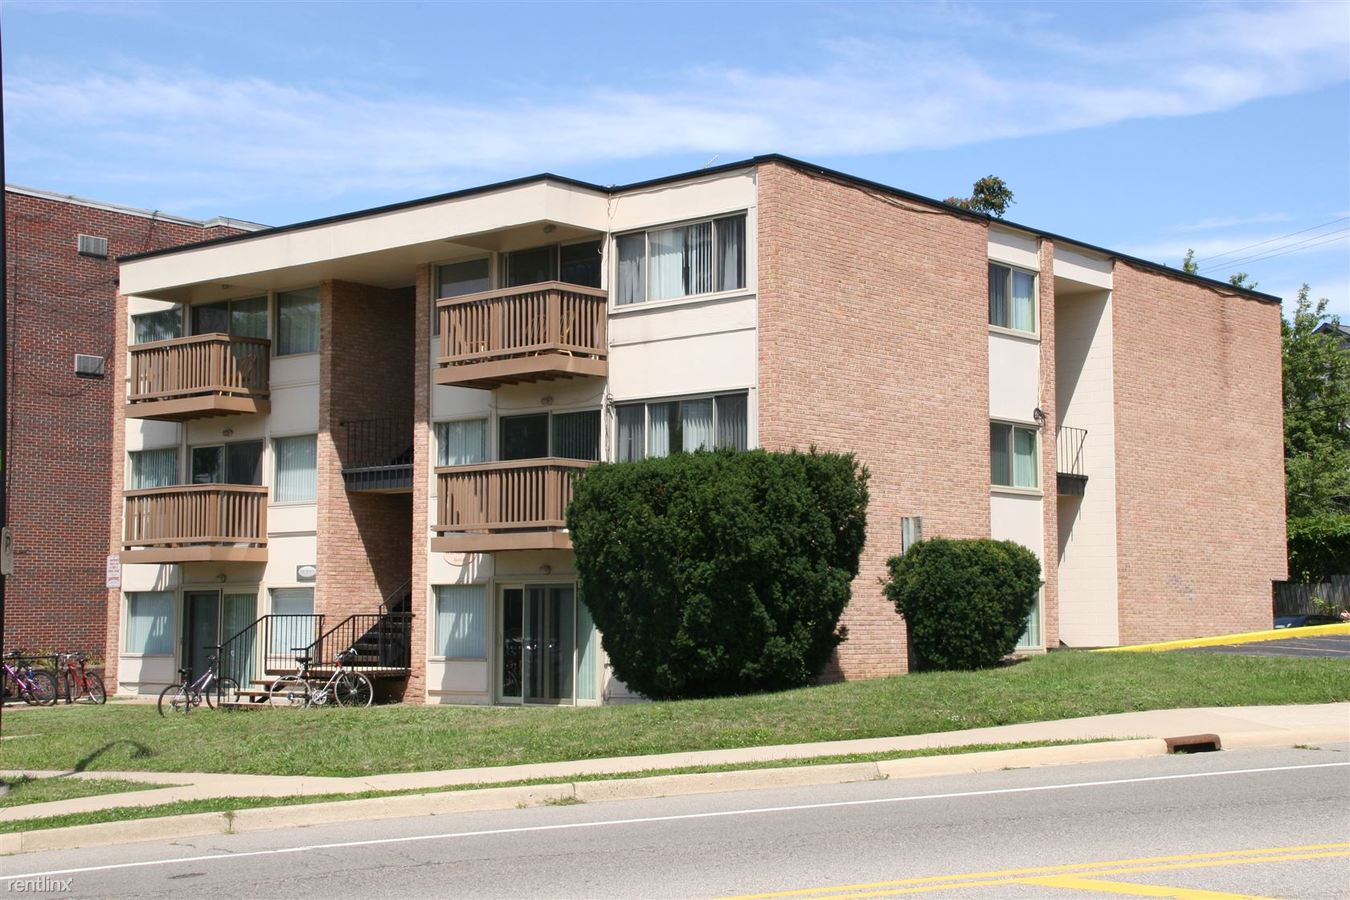 1 Bedroom 1 Bathroom Apartment for rent at 1337 Wilmot in Ann Arbor, MI